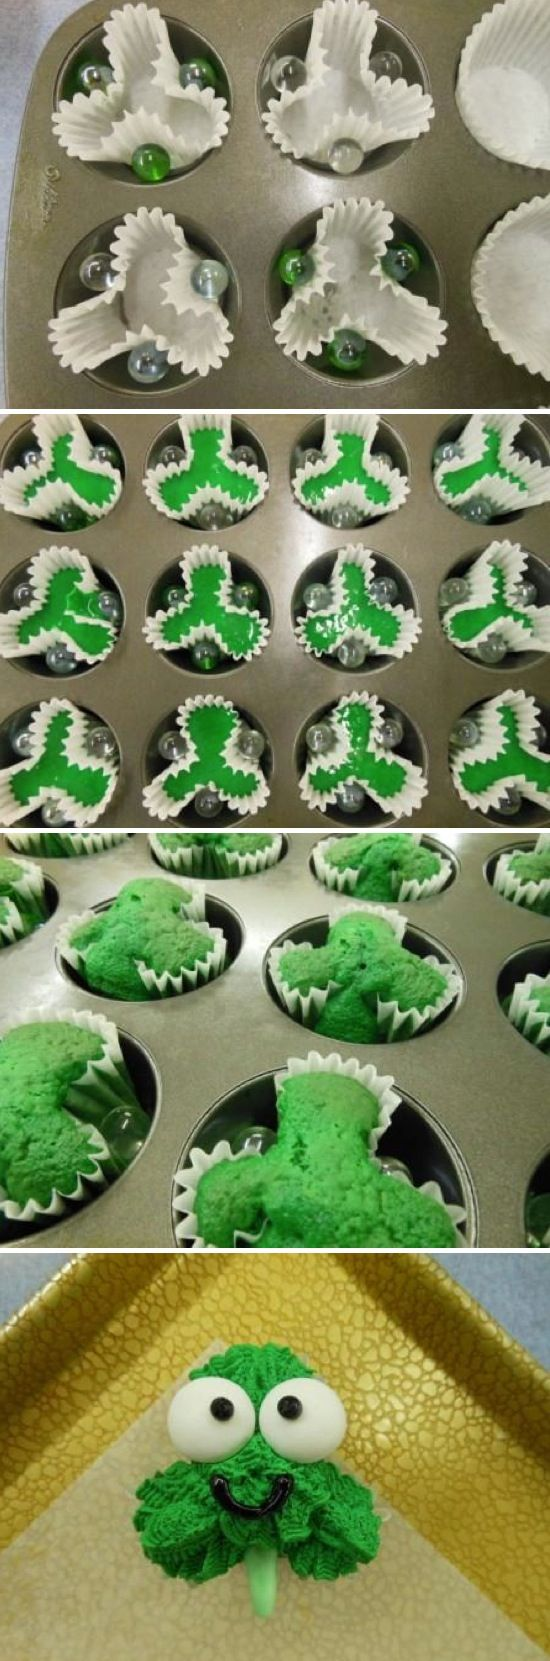 #Stpatricks Smiling Shamrock Cupcakes | St. Patrick's Day Crafts & Recipes -